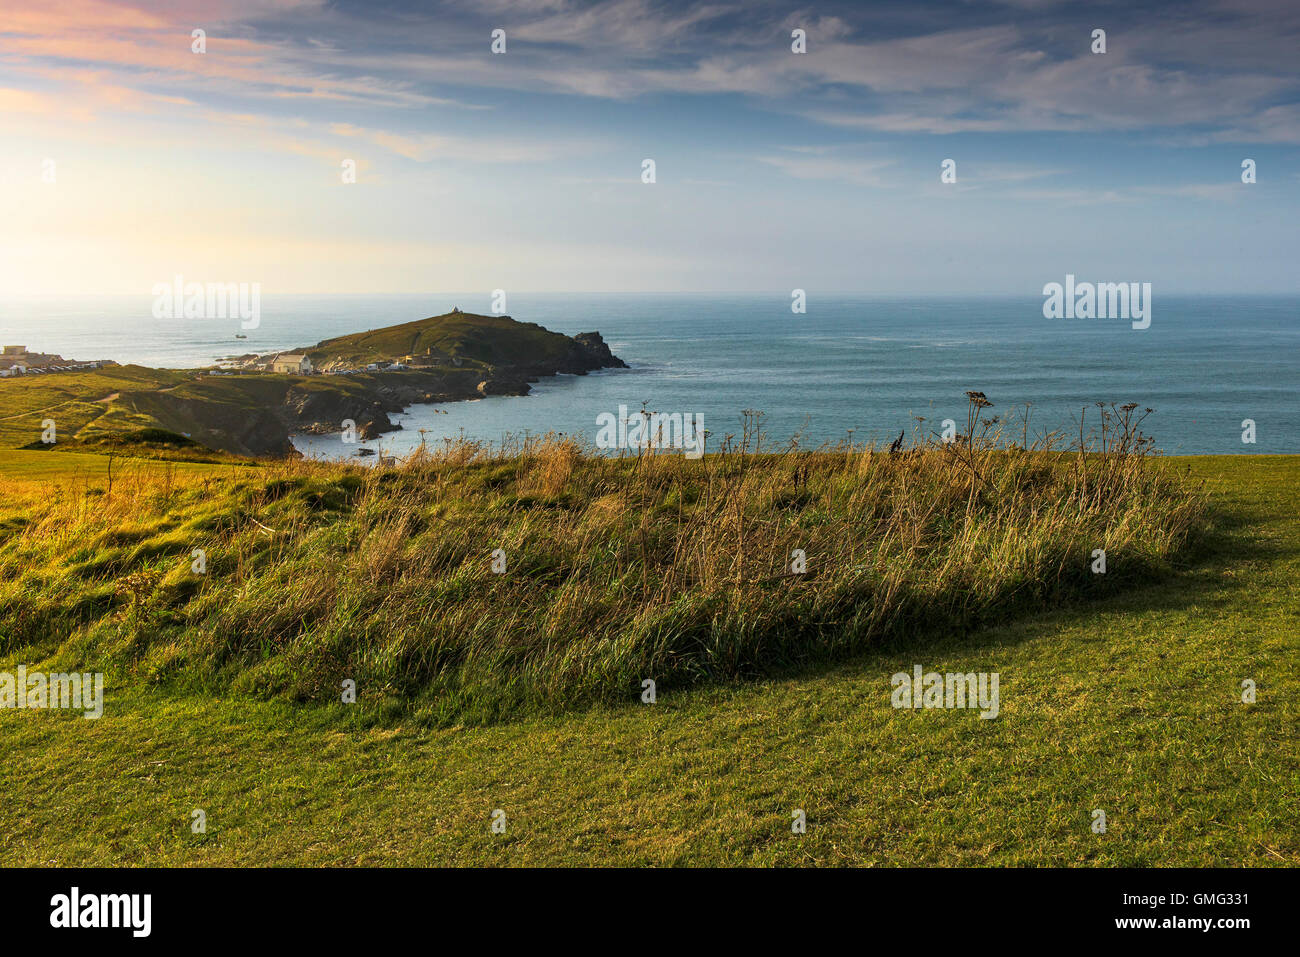 Sunset over Towan Headland in Newquay, Cornwall. - Stock Image